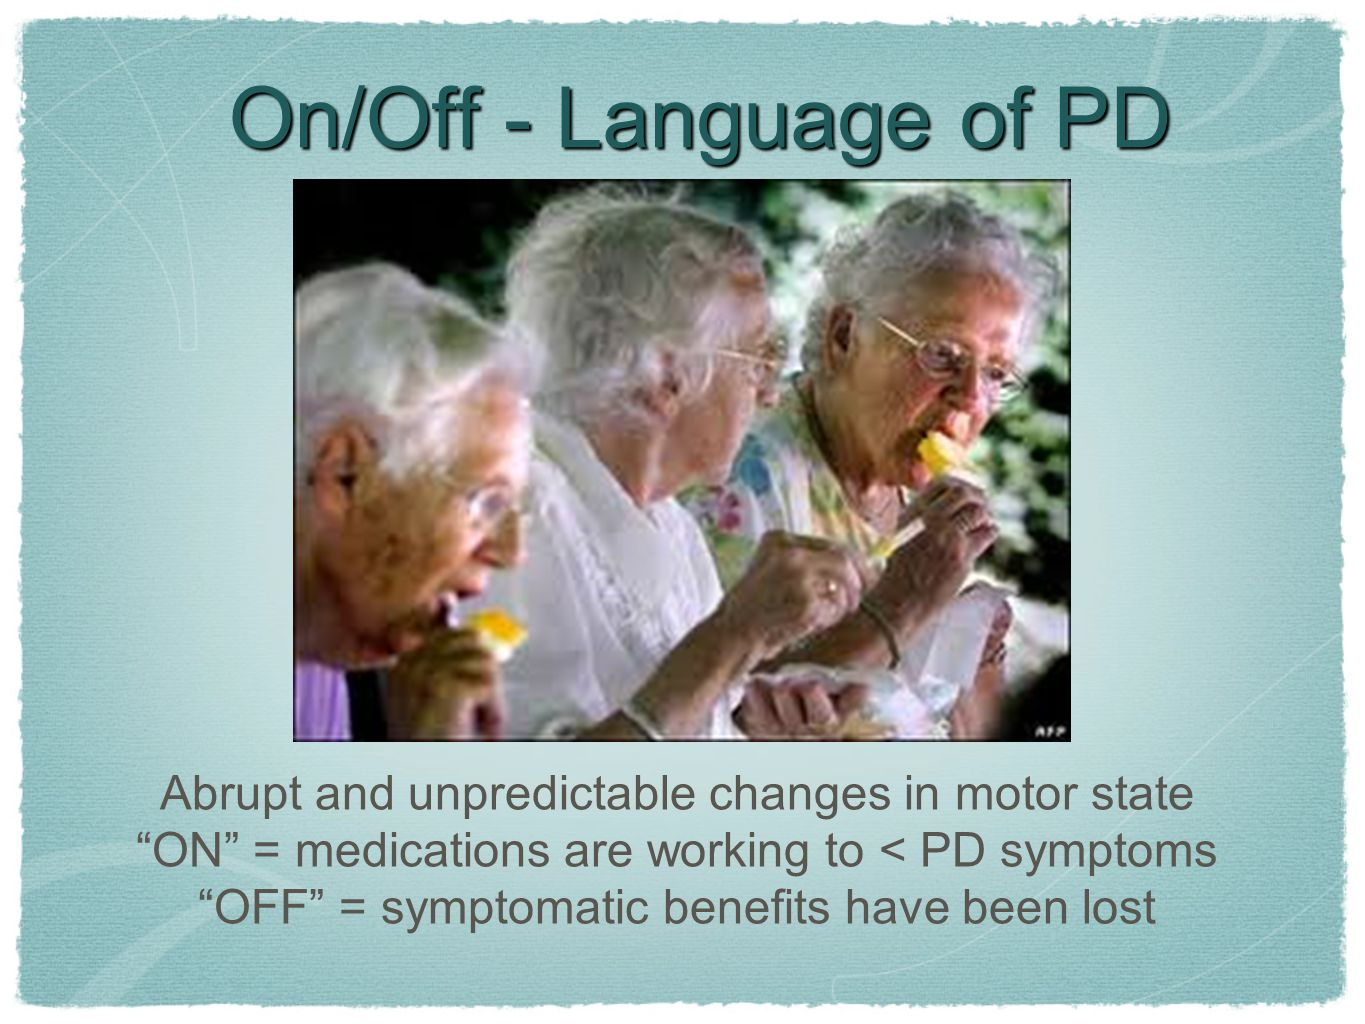 On/Off - Language of PD Abrupt and unpredictable changes in motor state. ON = medications are working to < PD symptoms.